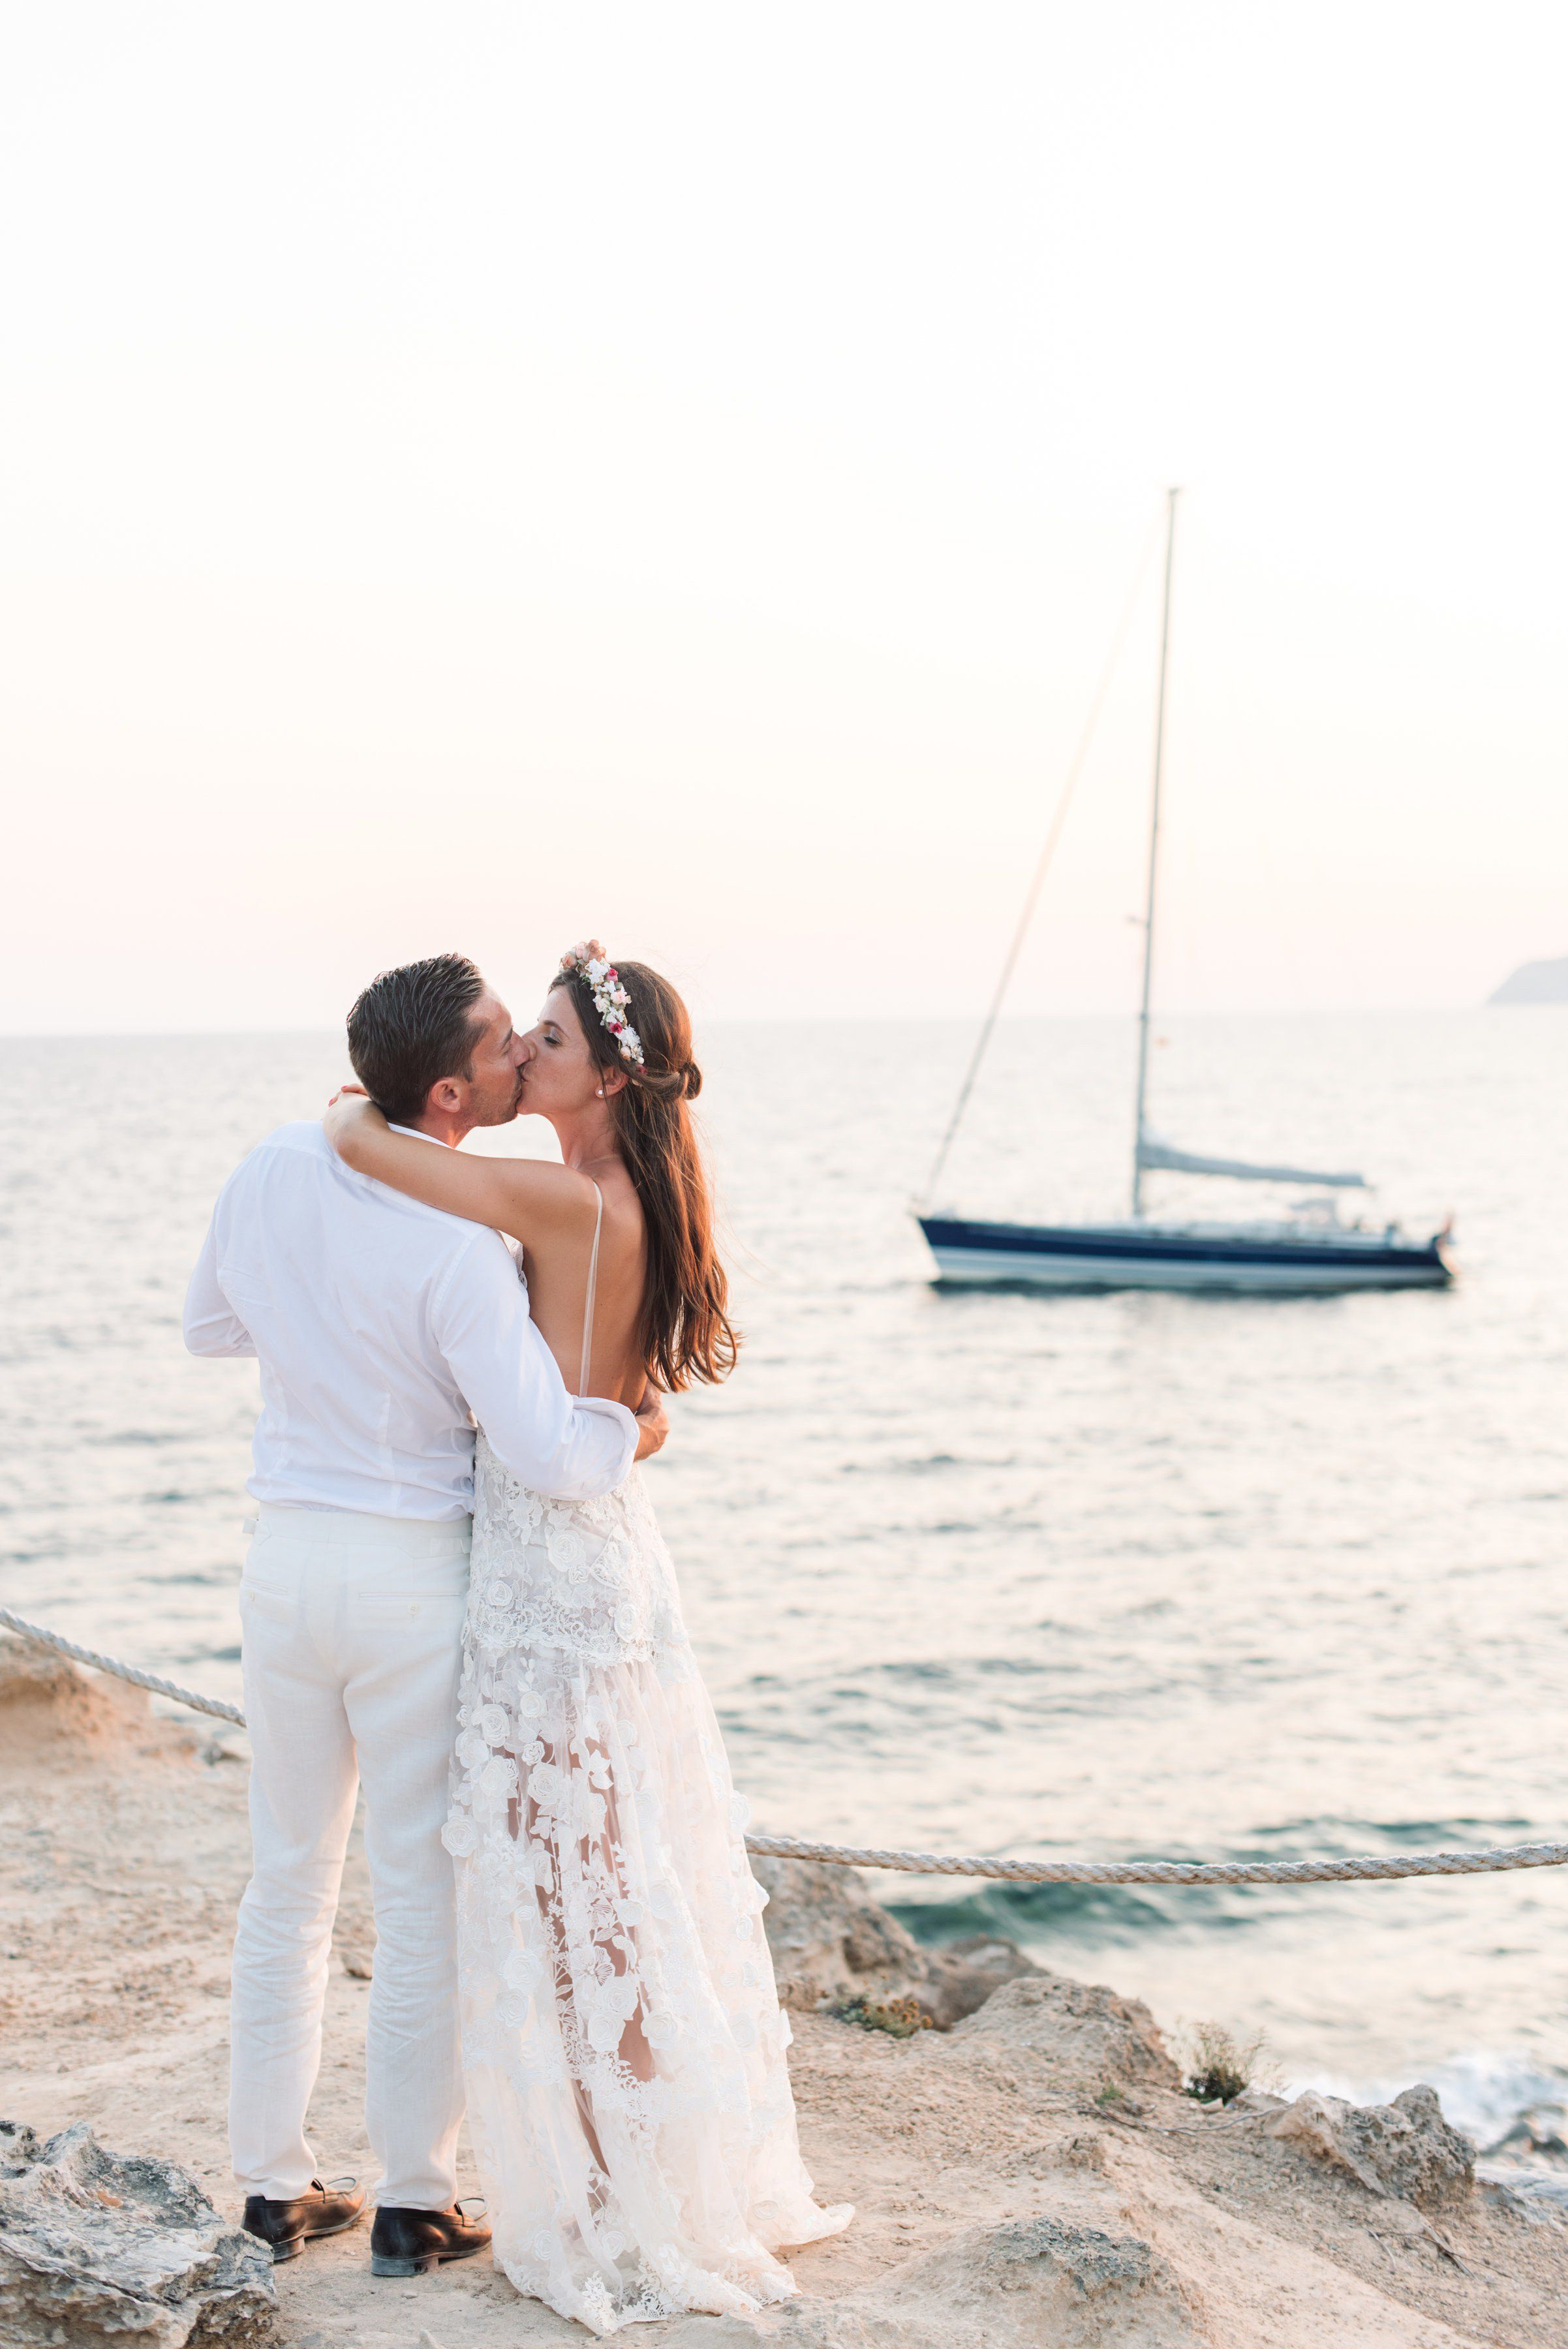 25 Shoes Perfect For Your Beach Wedding,Wedding Dresses For Mens In Sri Lanka